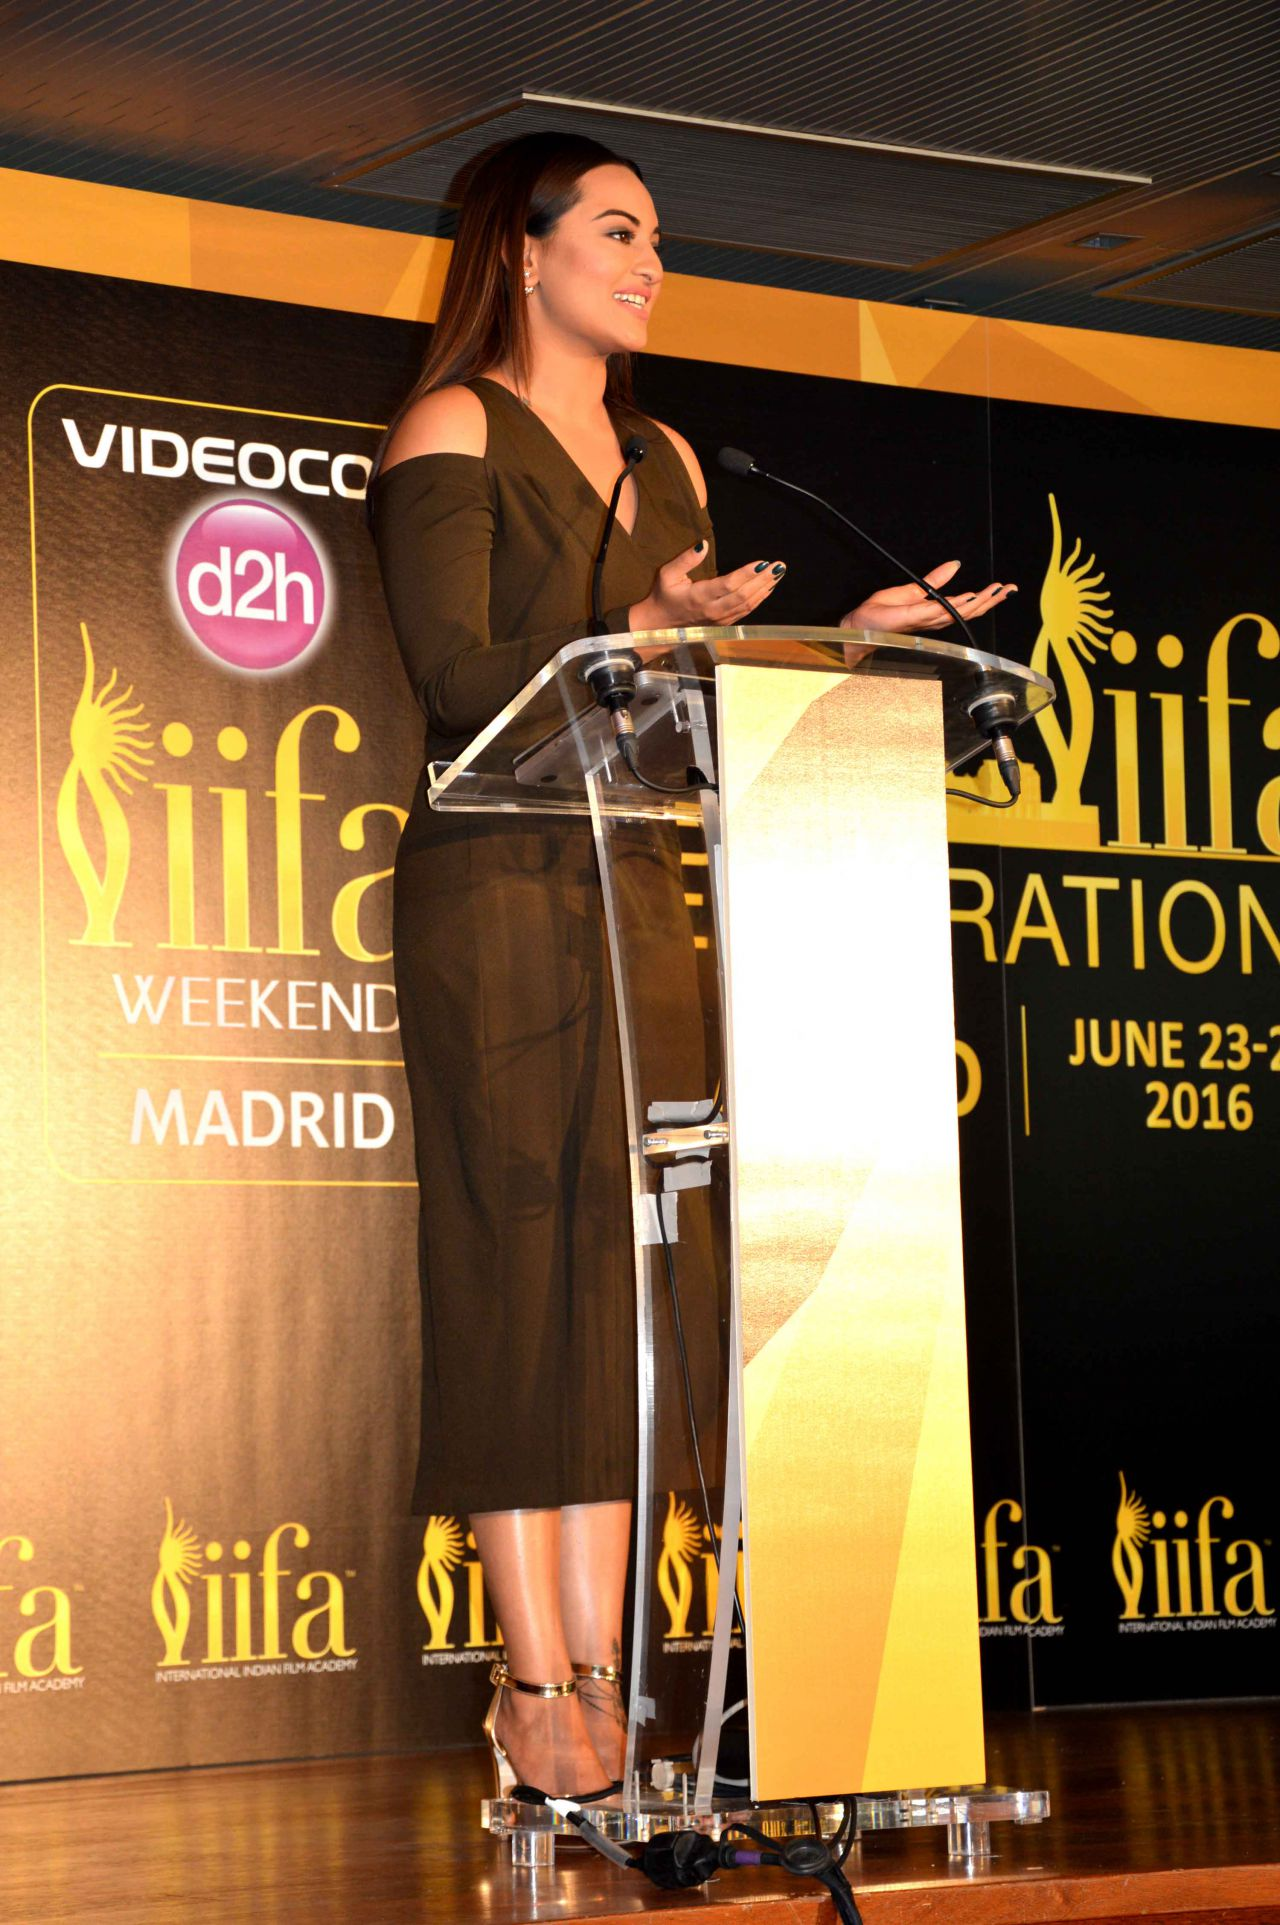 Presentación de la 17ª edición del IIFA Weekend and Awards (Oscars de Bollywood) que tendrá lugar en Madrid, del 24 al 26 de Junio